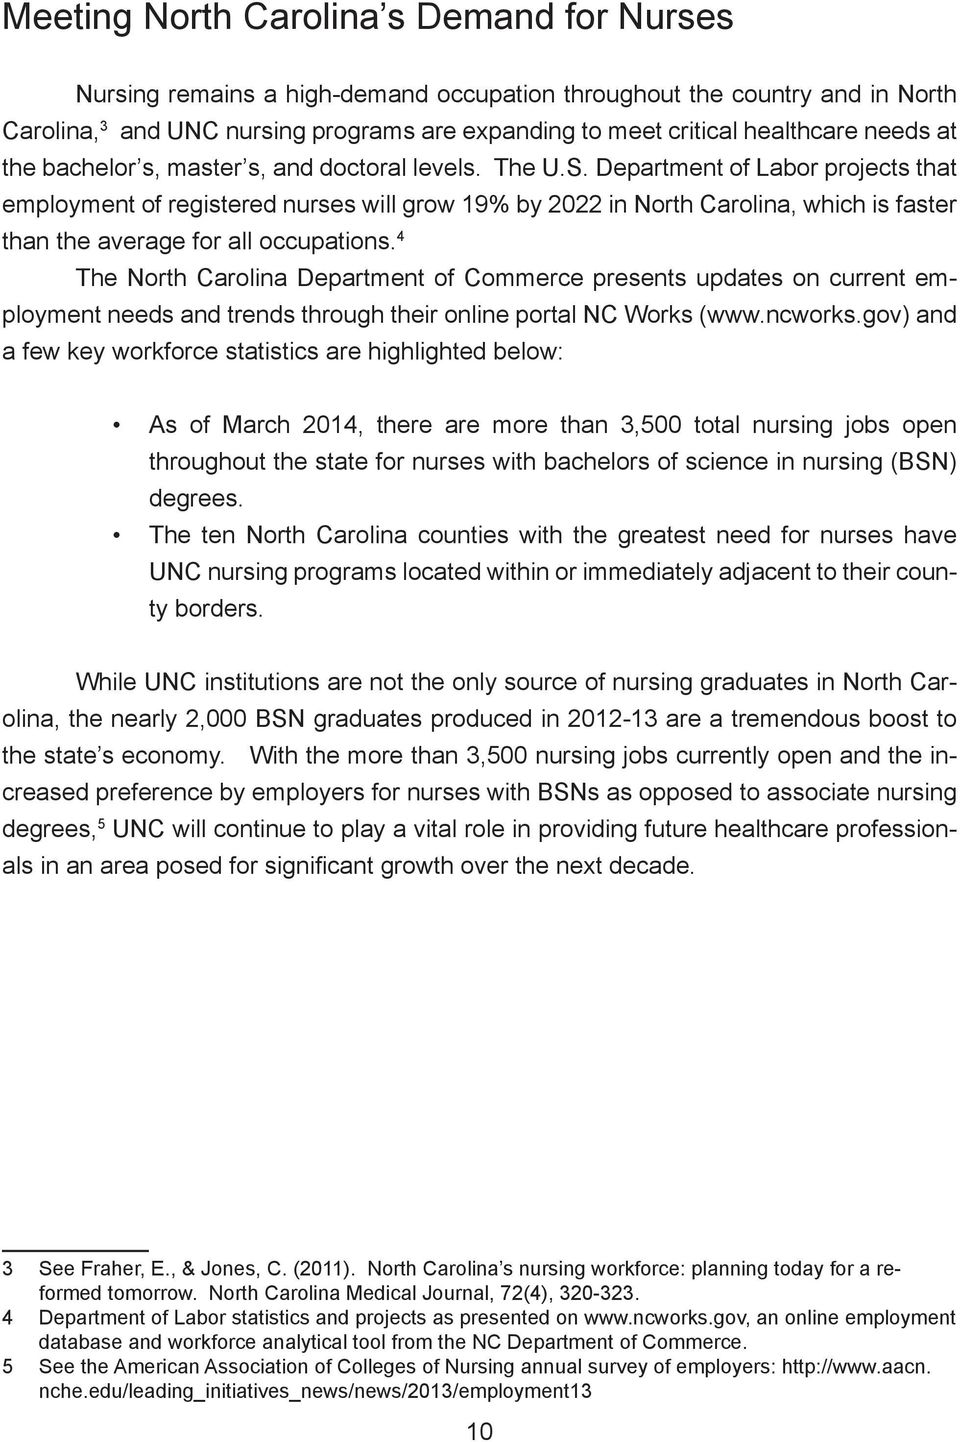 Department of Labor projects that employment of registered nurses will grow 19% by 2022 in North Carolina, which is faster than the average for all occupations.